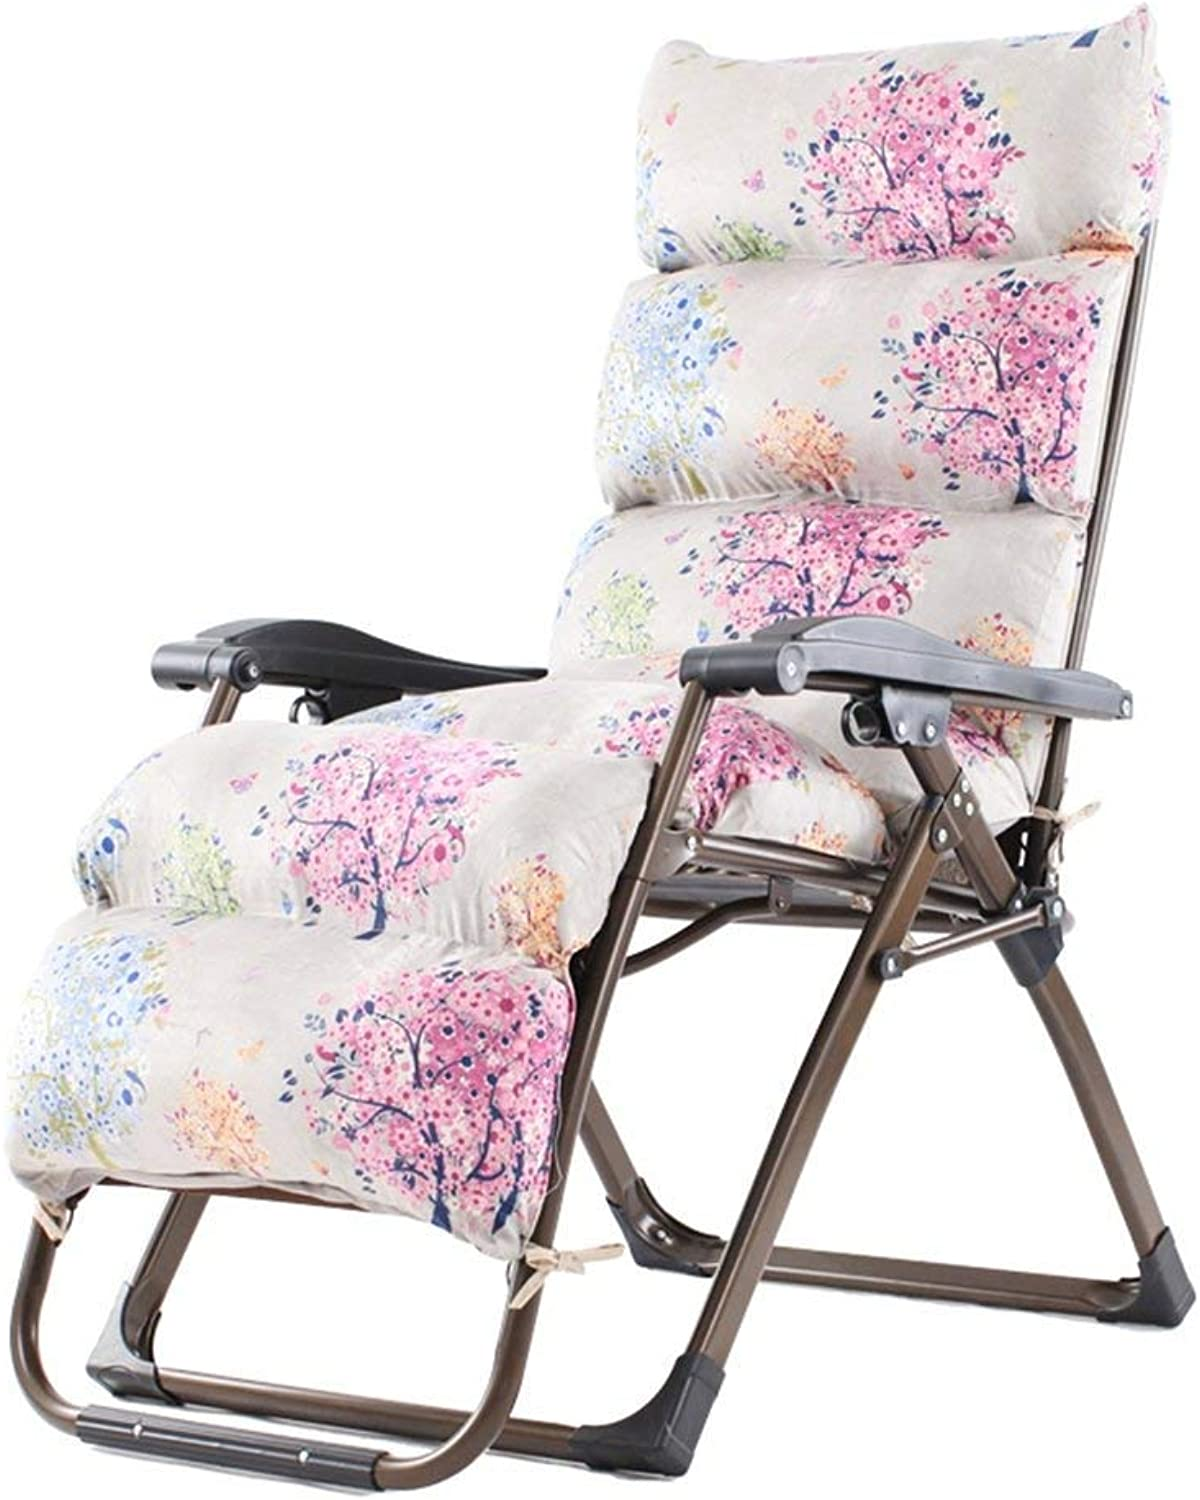 Sofa Beds Folding Chair Lazy Sofa Office Chair Leisure Beach Chair Happy Chair Home Lazy Sofa (A Variety of colors Optional) (color    17)